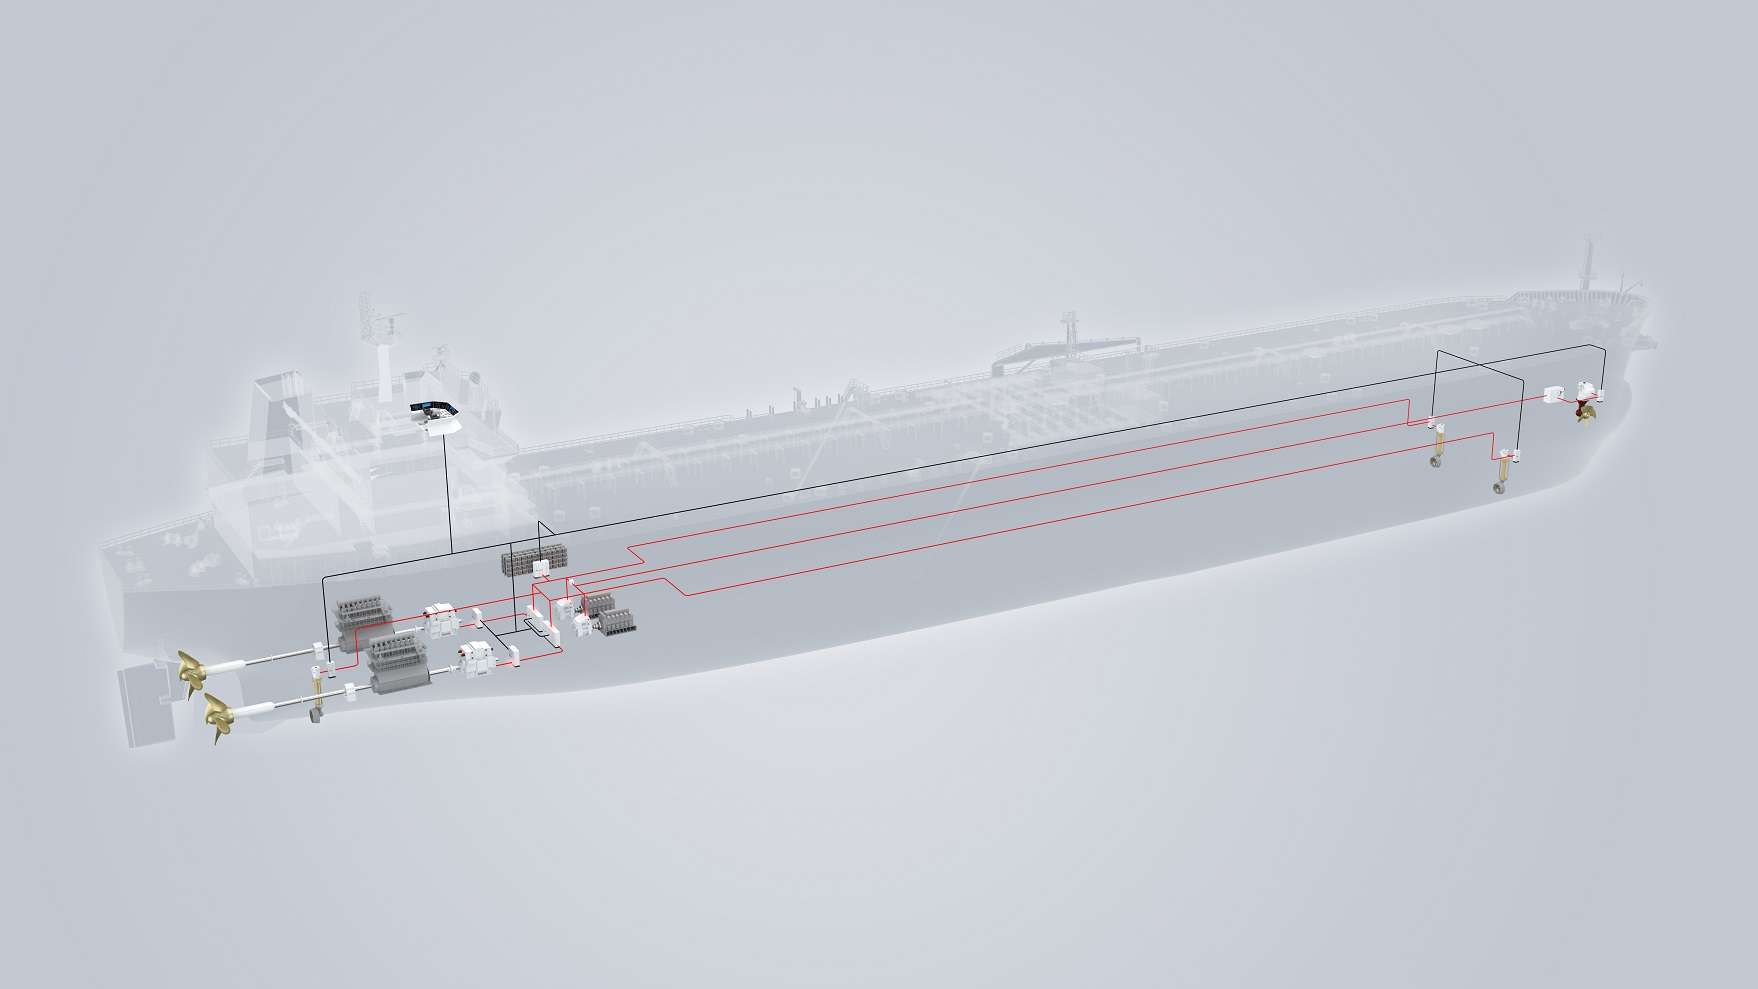 Shuttle+tanker+illustration+showing+ABB's+solutions+on+board